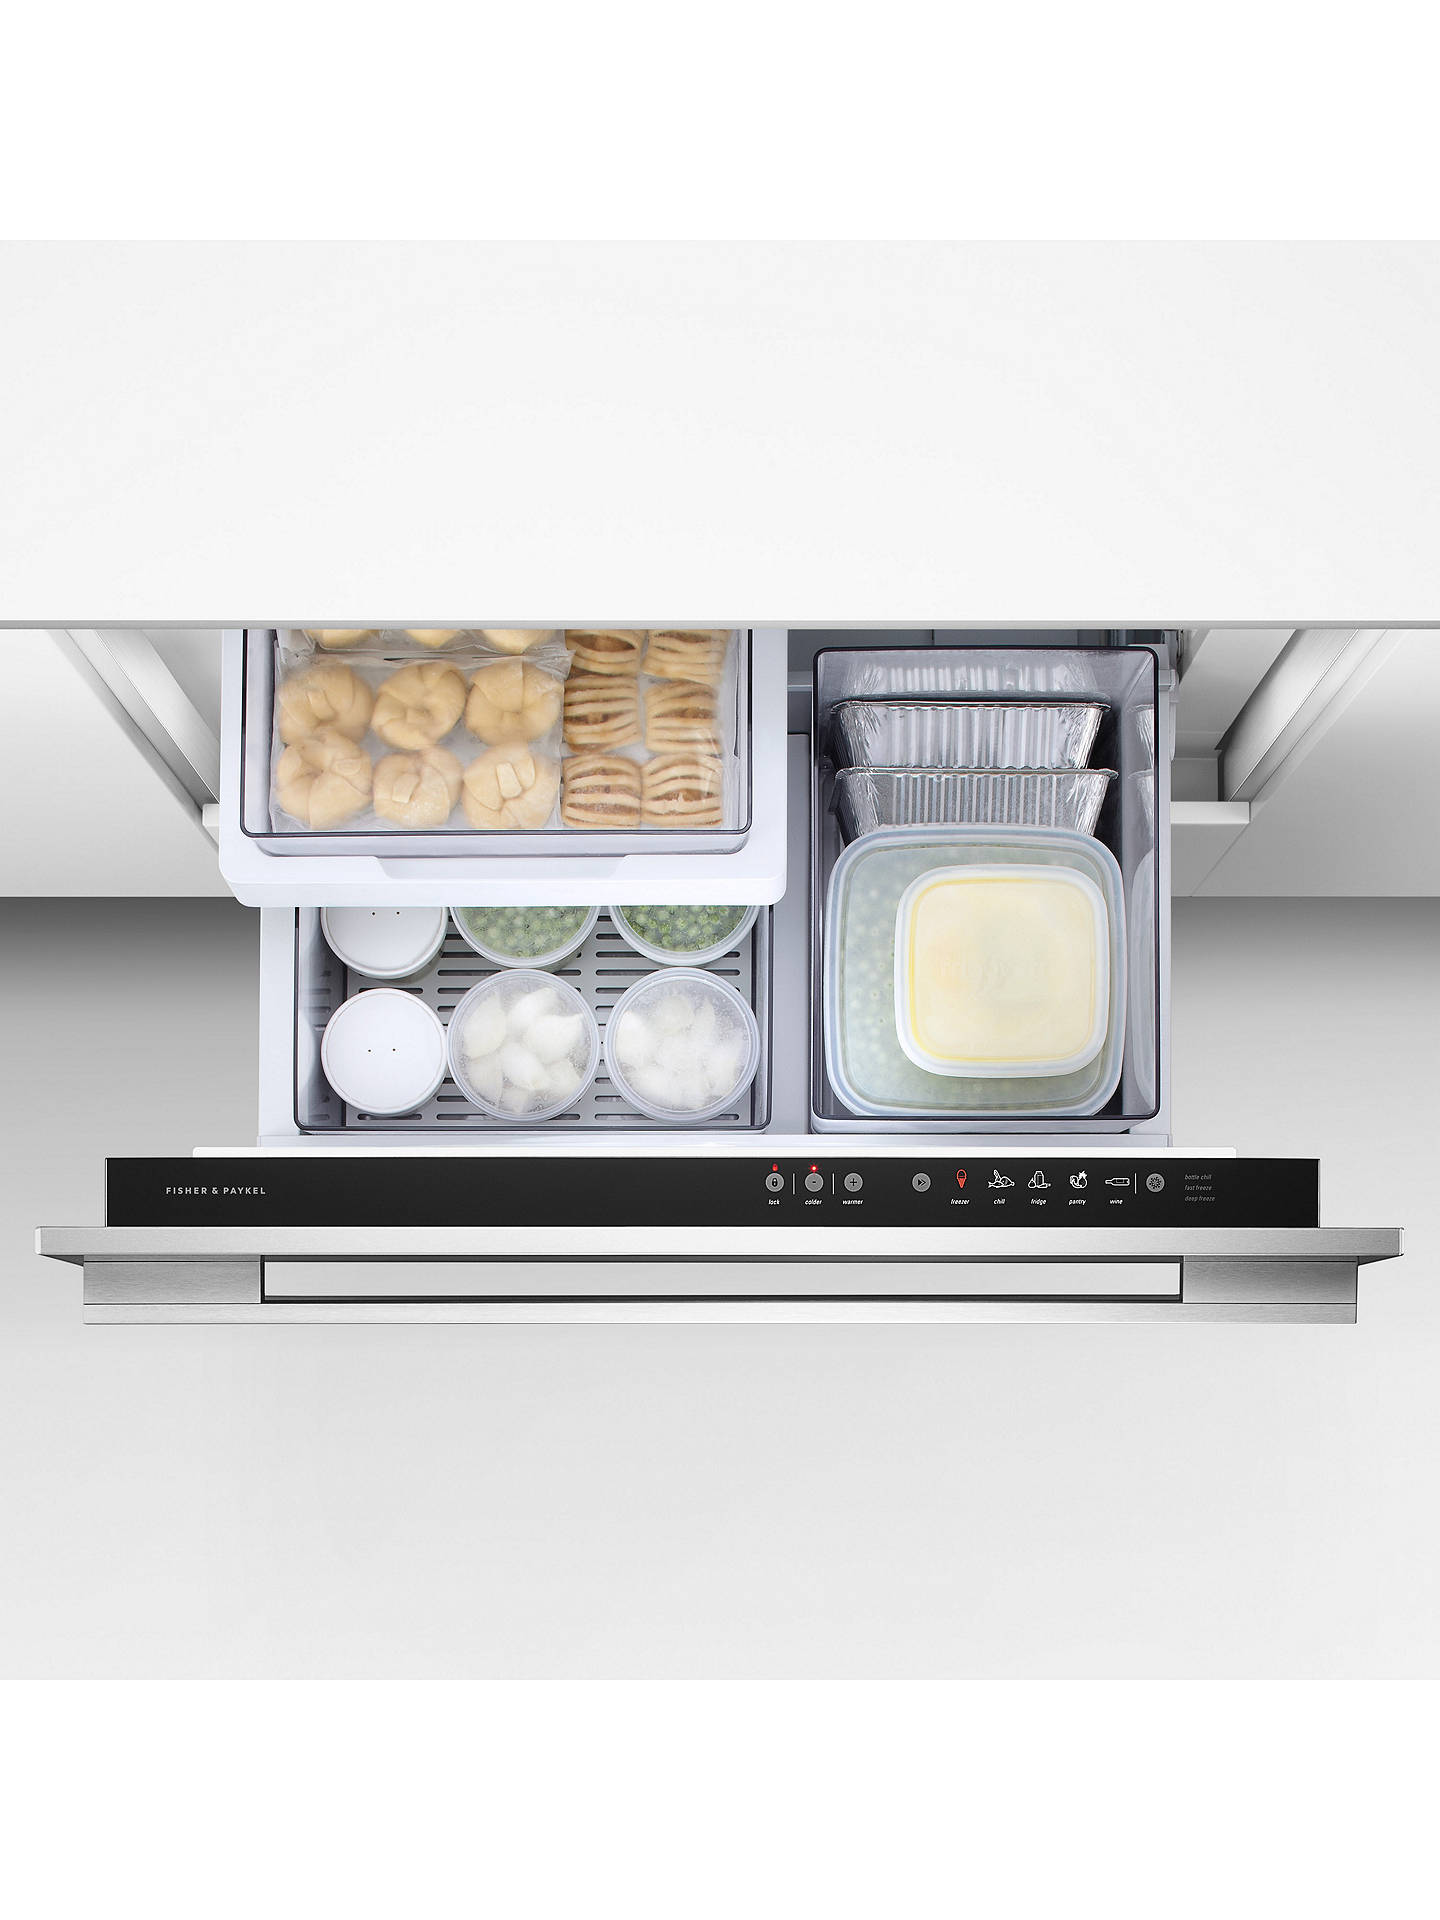 Fisher Paykel Rb90s64mkiw2 Cooldrawer Multi Temperature Refrigerator Online At Johnlewis